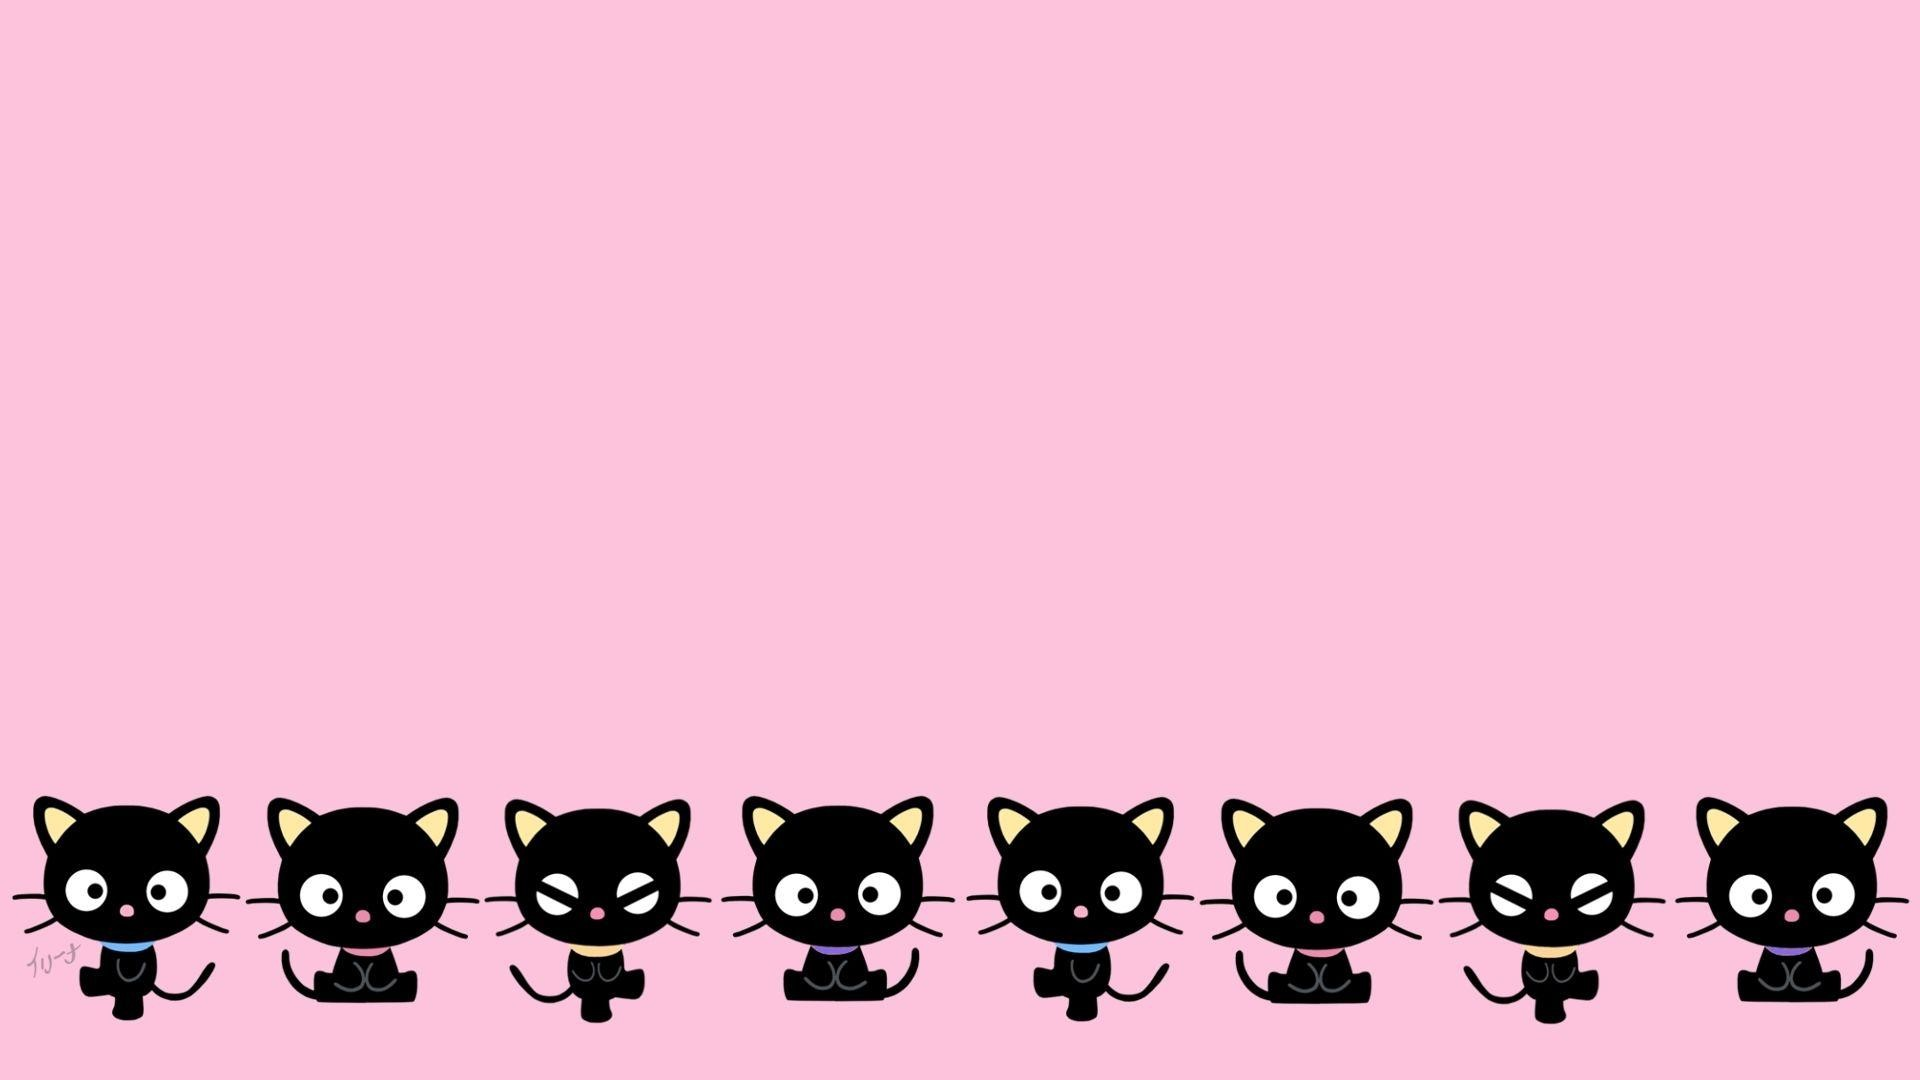 Res: 1920x1080, Wallpapers For > Cute Chococat Wallpaper